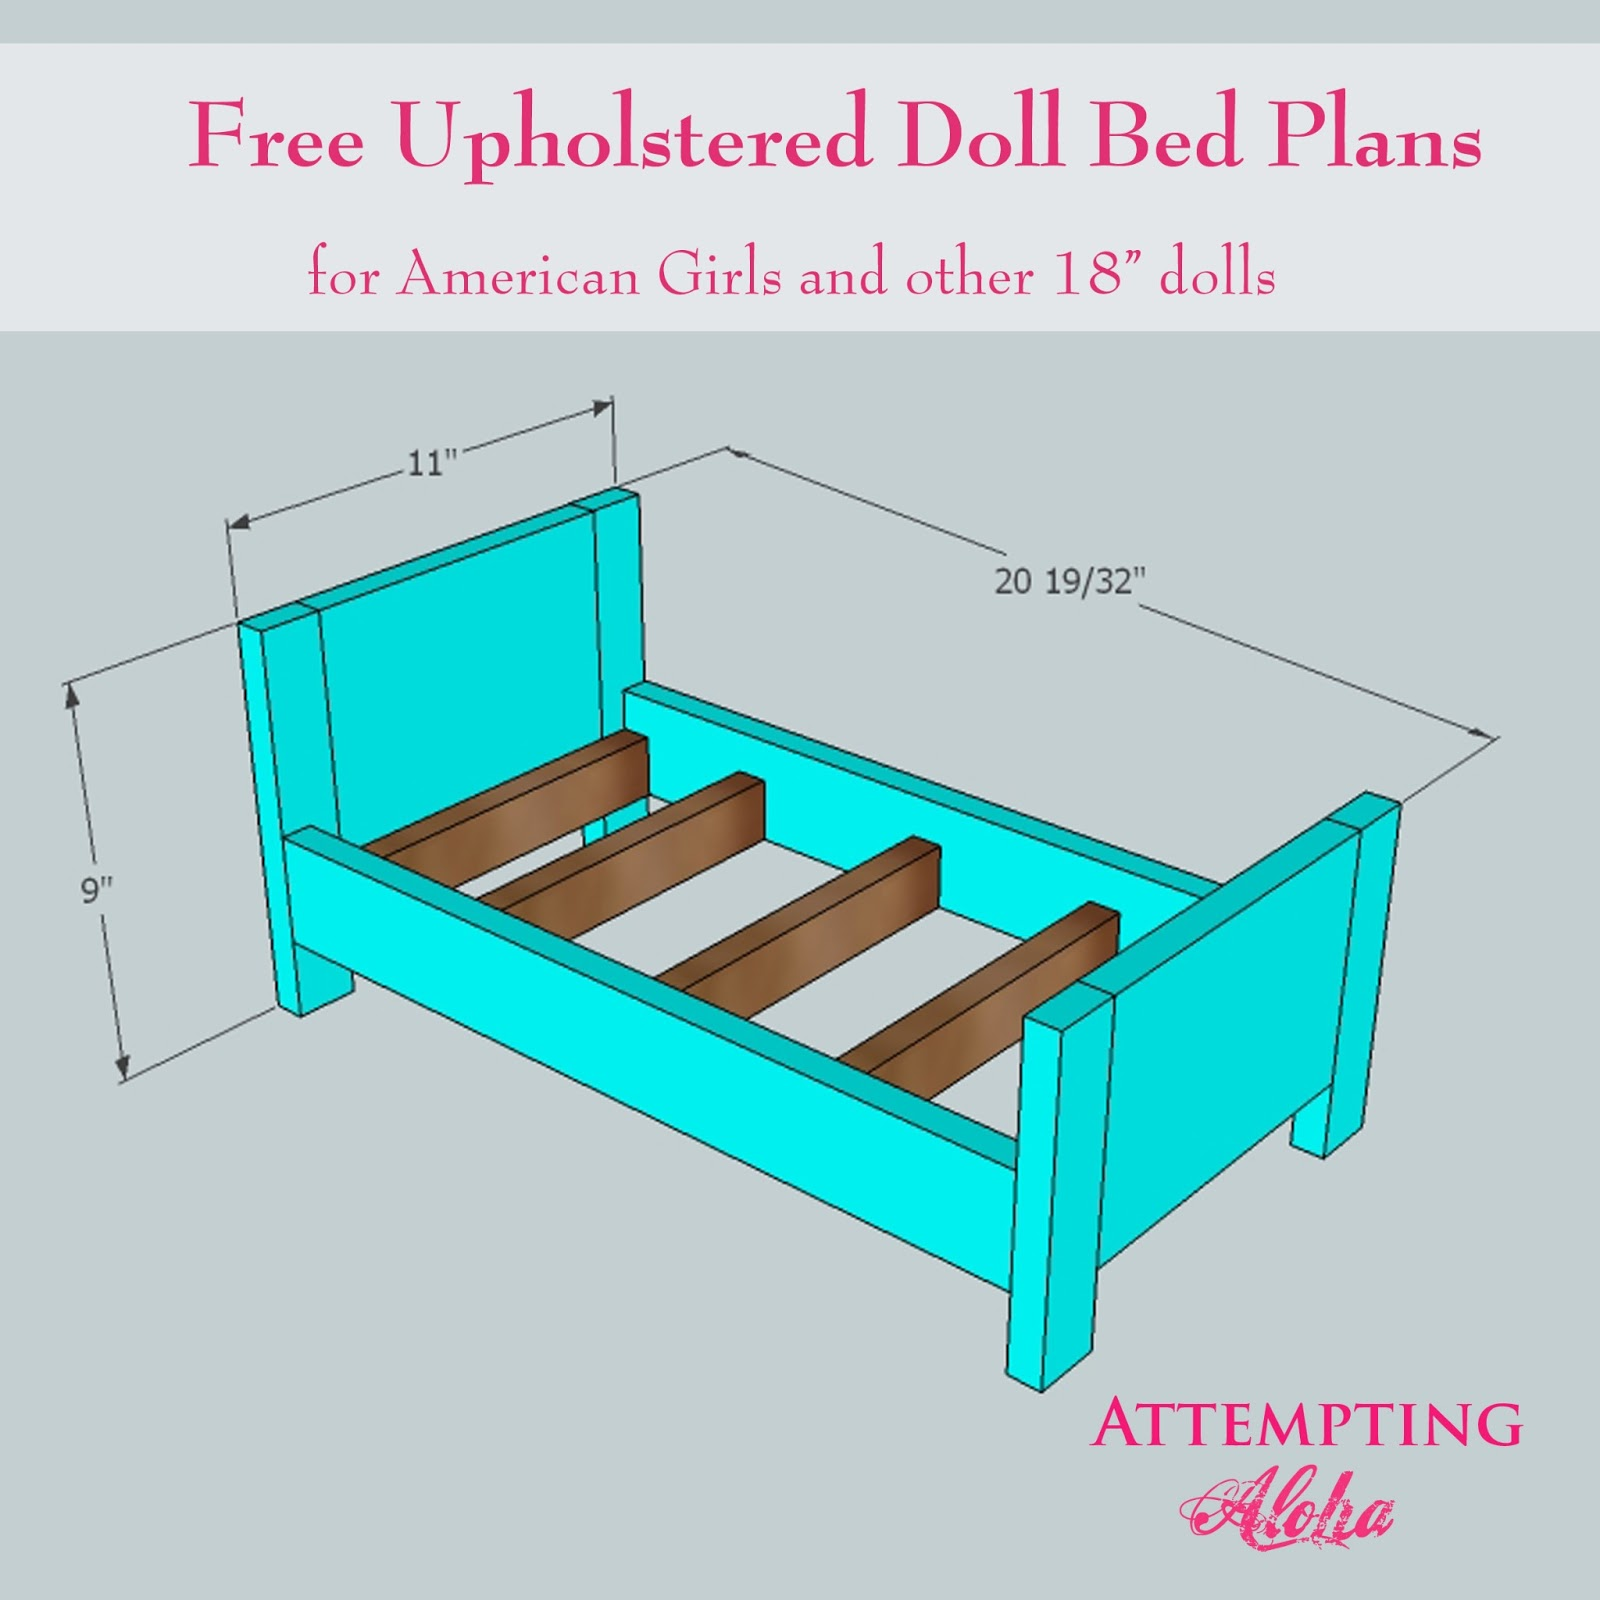 free doll bed plans for 18 inch dolls | ethridge207